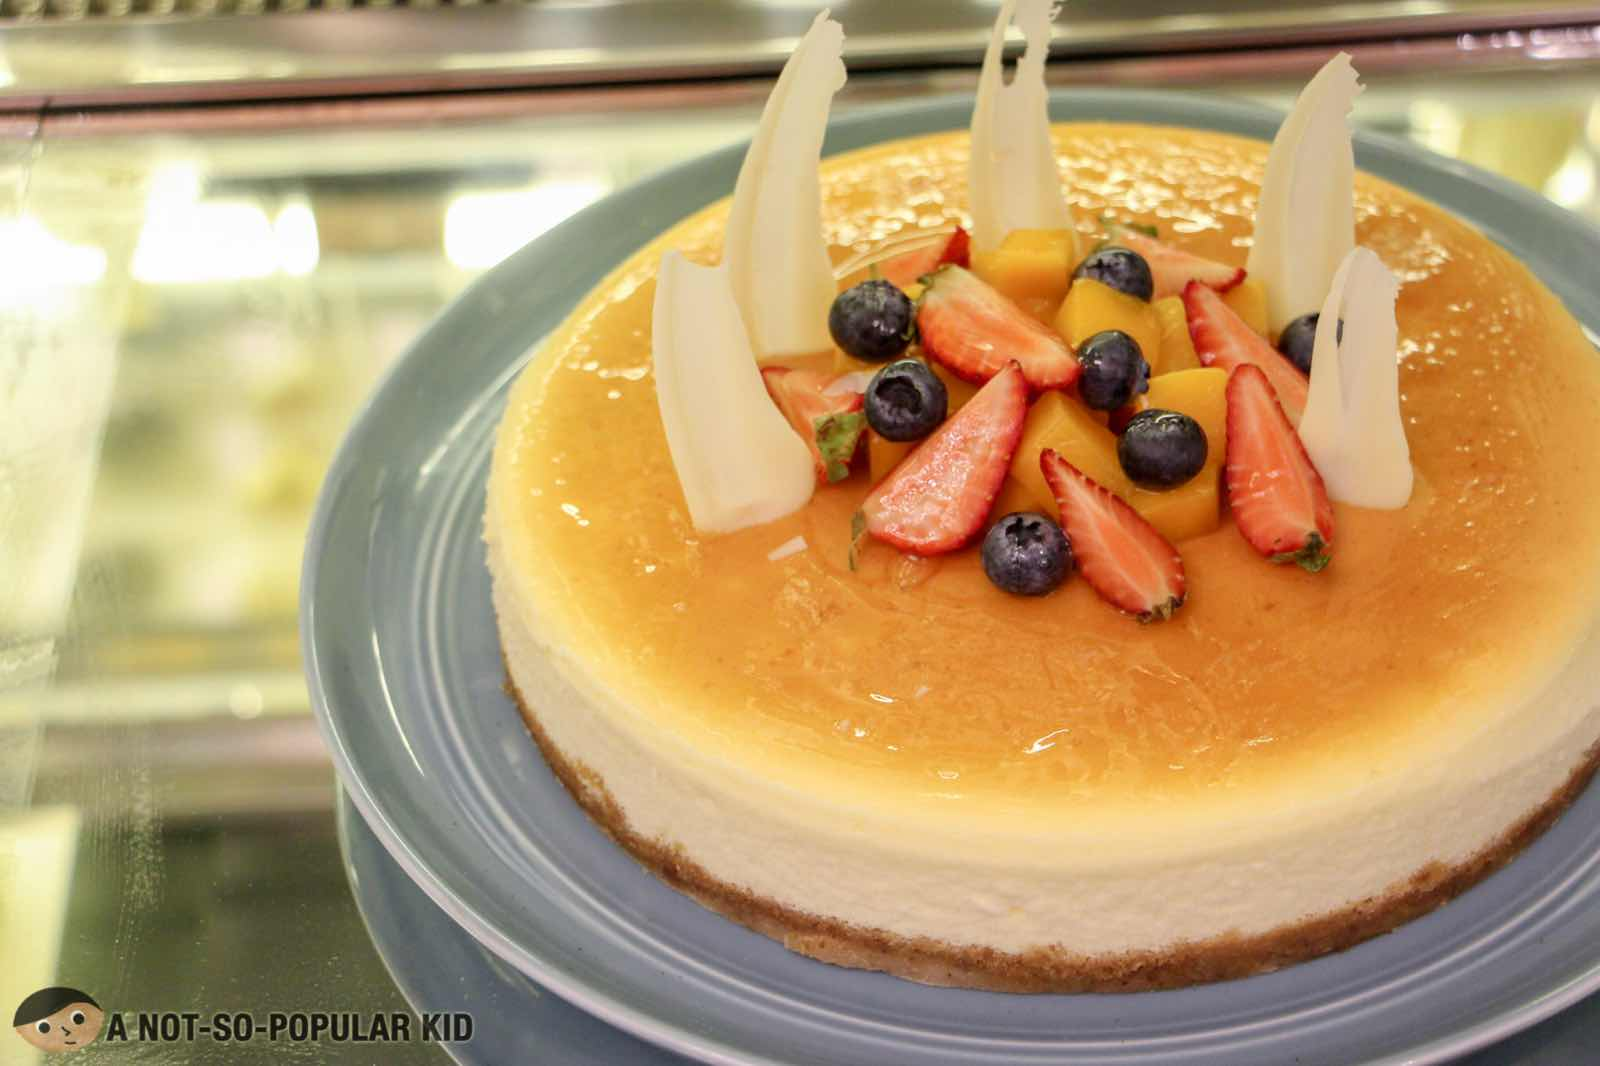 Smooth, airy cheesecake in Six Doors Buffet